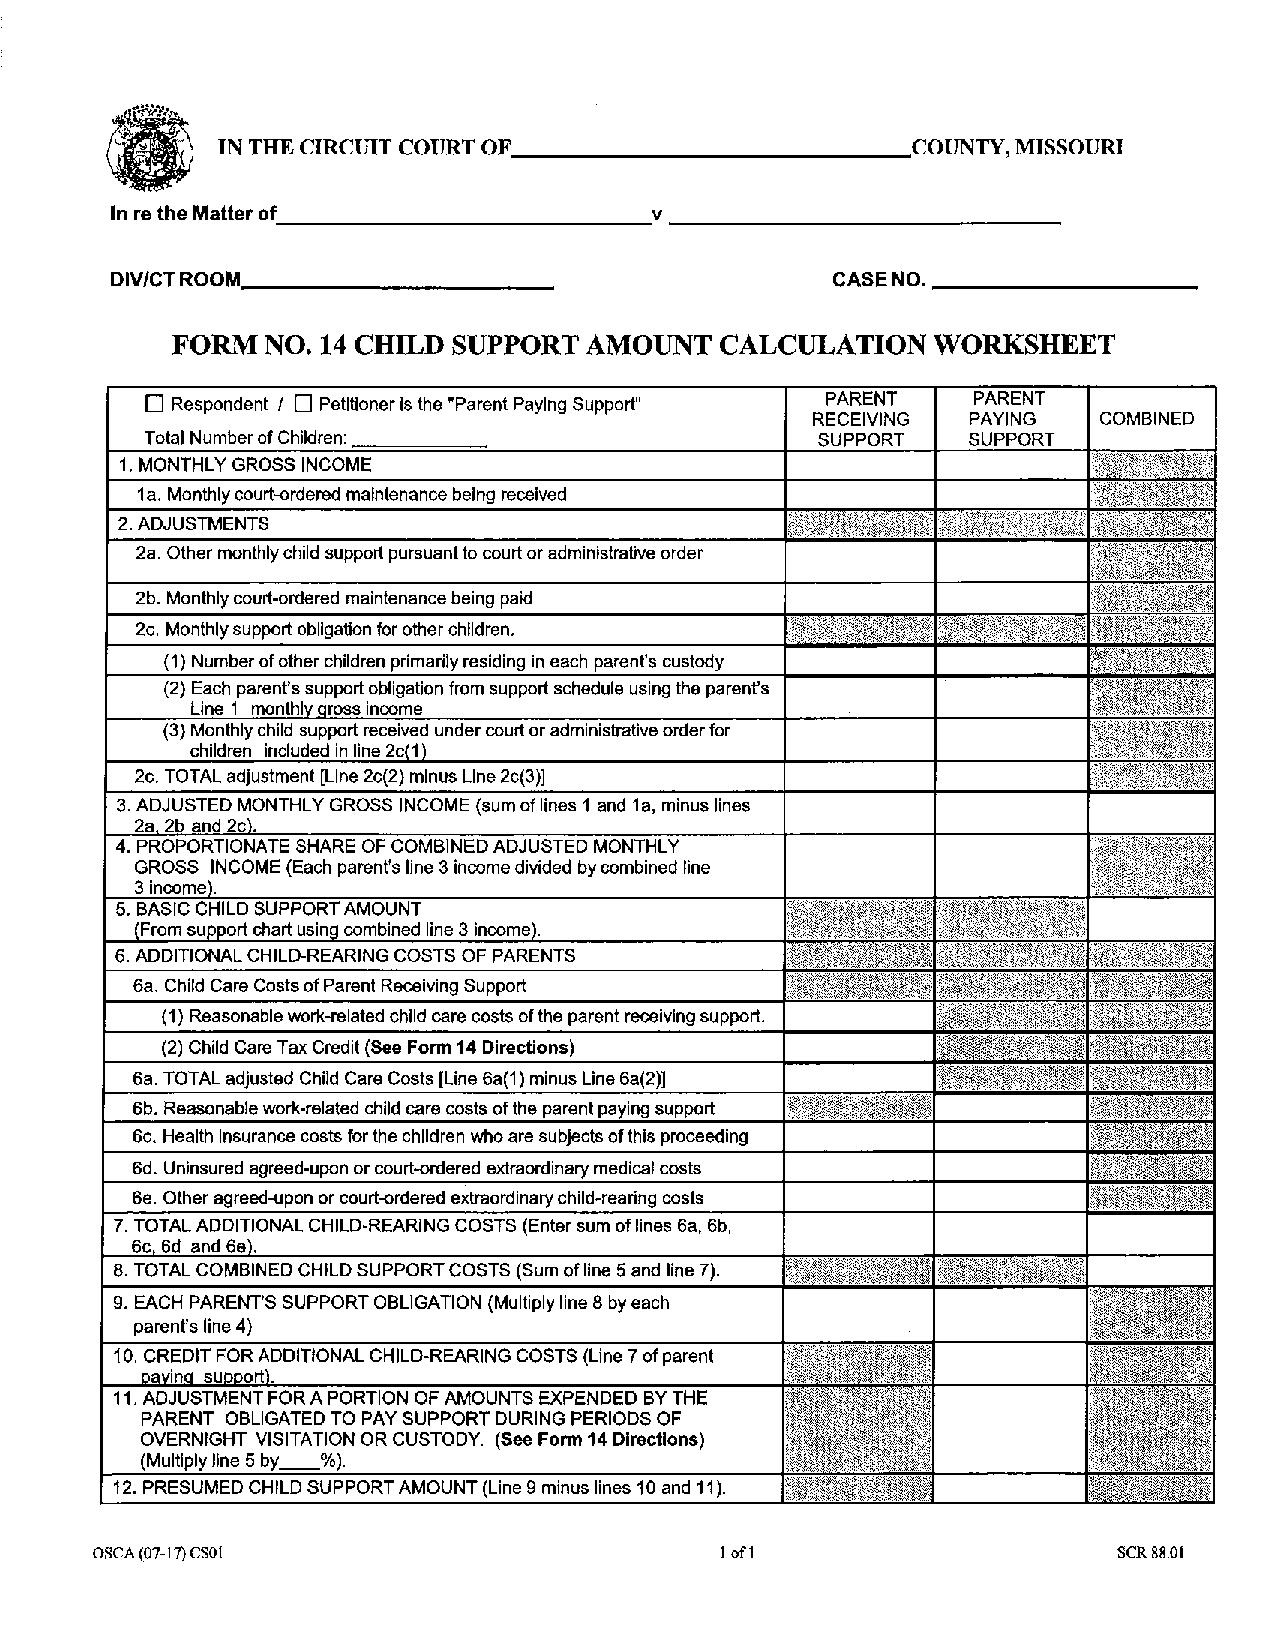 Calculating Child Support What Is The Form 14